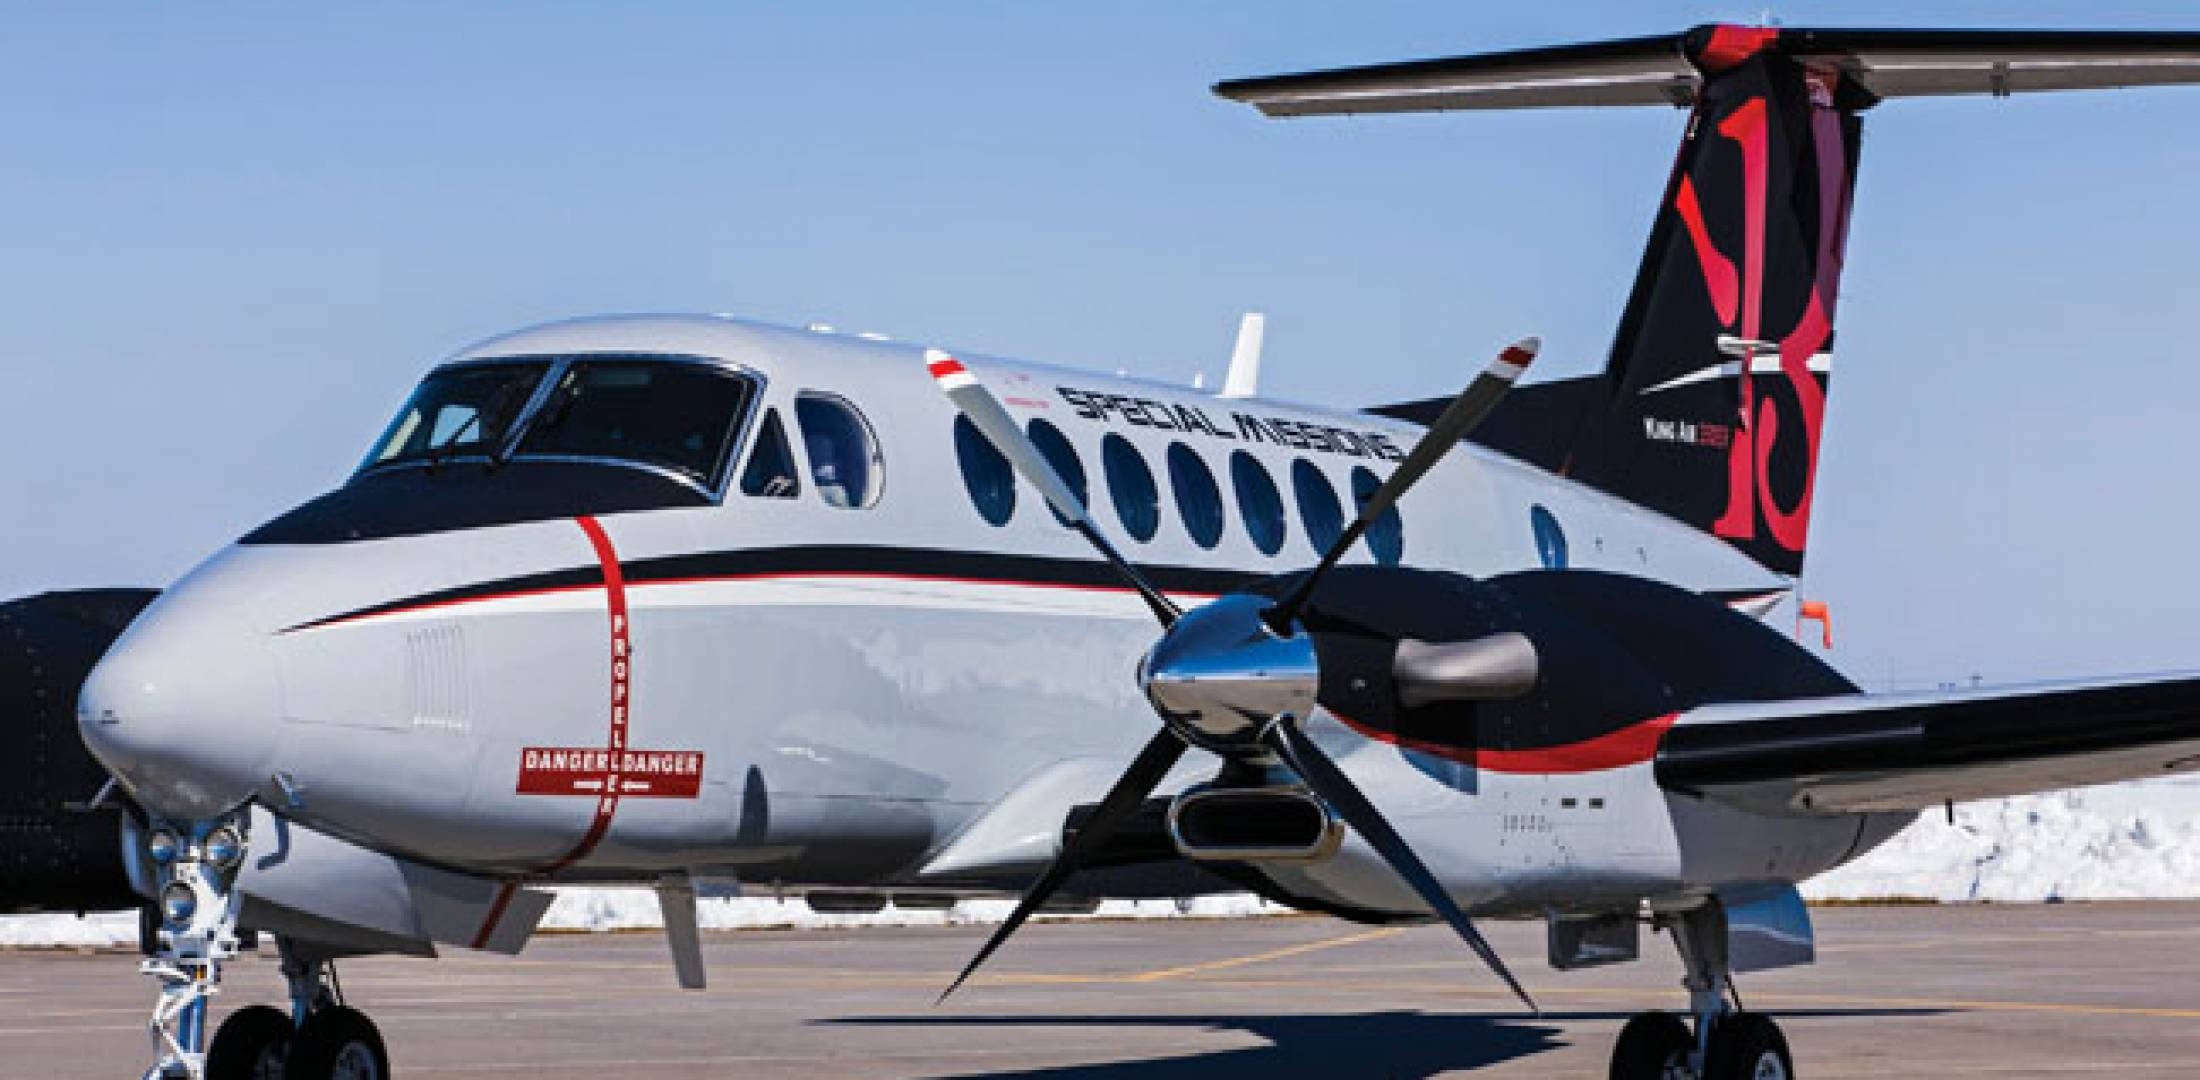 The core mission of the Beechcraft King Air 350ER is long range and lengthy loitering times, up to 2,650 nm or 12 hours.